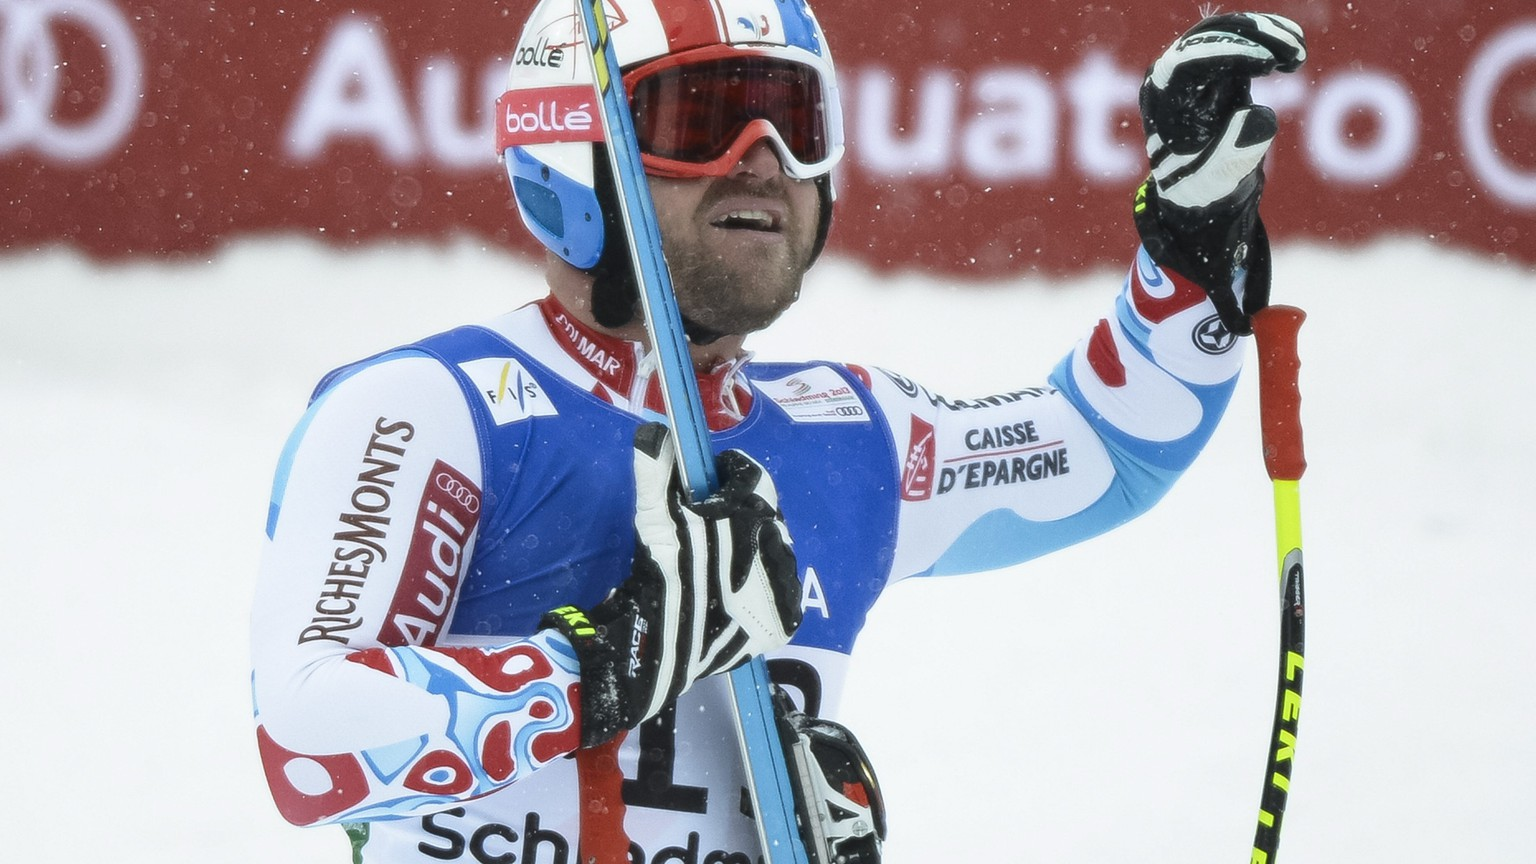 ARCHIVBILD ZUM TOEDLICHEN UNFALL DES FRANZOESISCHEN SKIRENNFAHRERS DAVID POISSON, AM MONTAG, 13. NOVEMBER 2017 - David Poisson of France, bronze medal, reacts in the finish area during the Men's Downhill race at the FIS Alpine World Ski Championships in Schladming, Austria, Saturday, February 9, 2013. The Alpine Skiing World Championships in Schladming take place from 04 to 17 February 2013. (KEYSTONE/Jean-Christophe Bott)